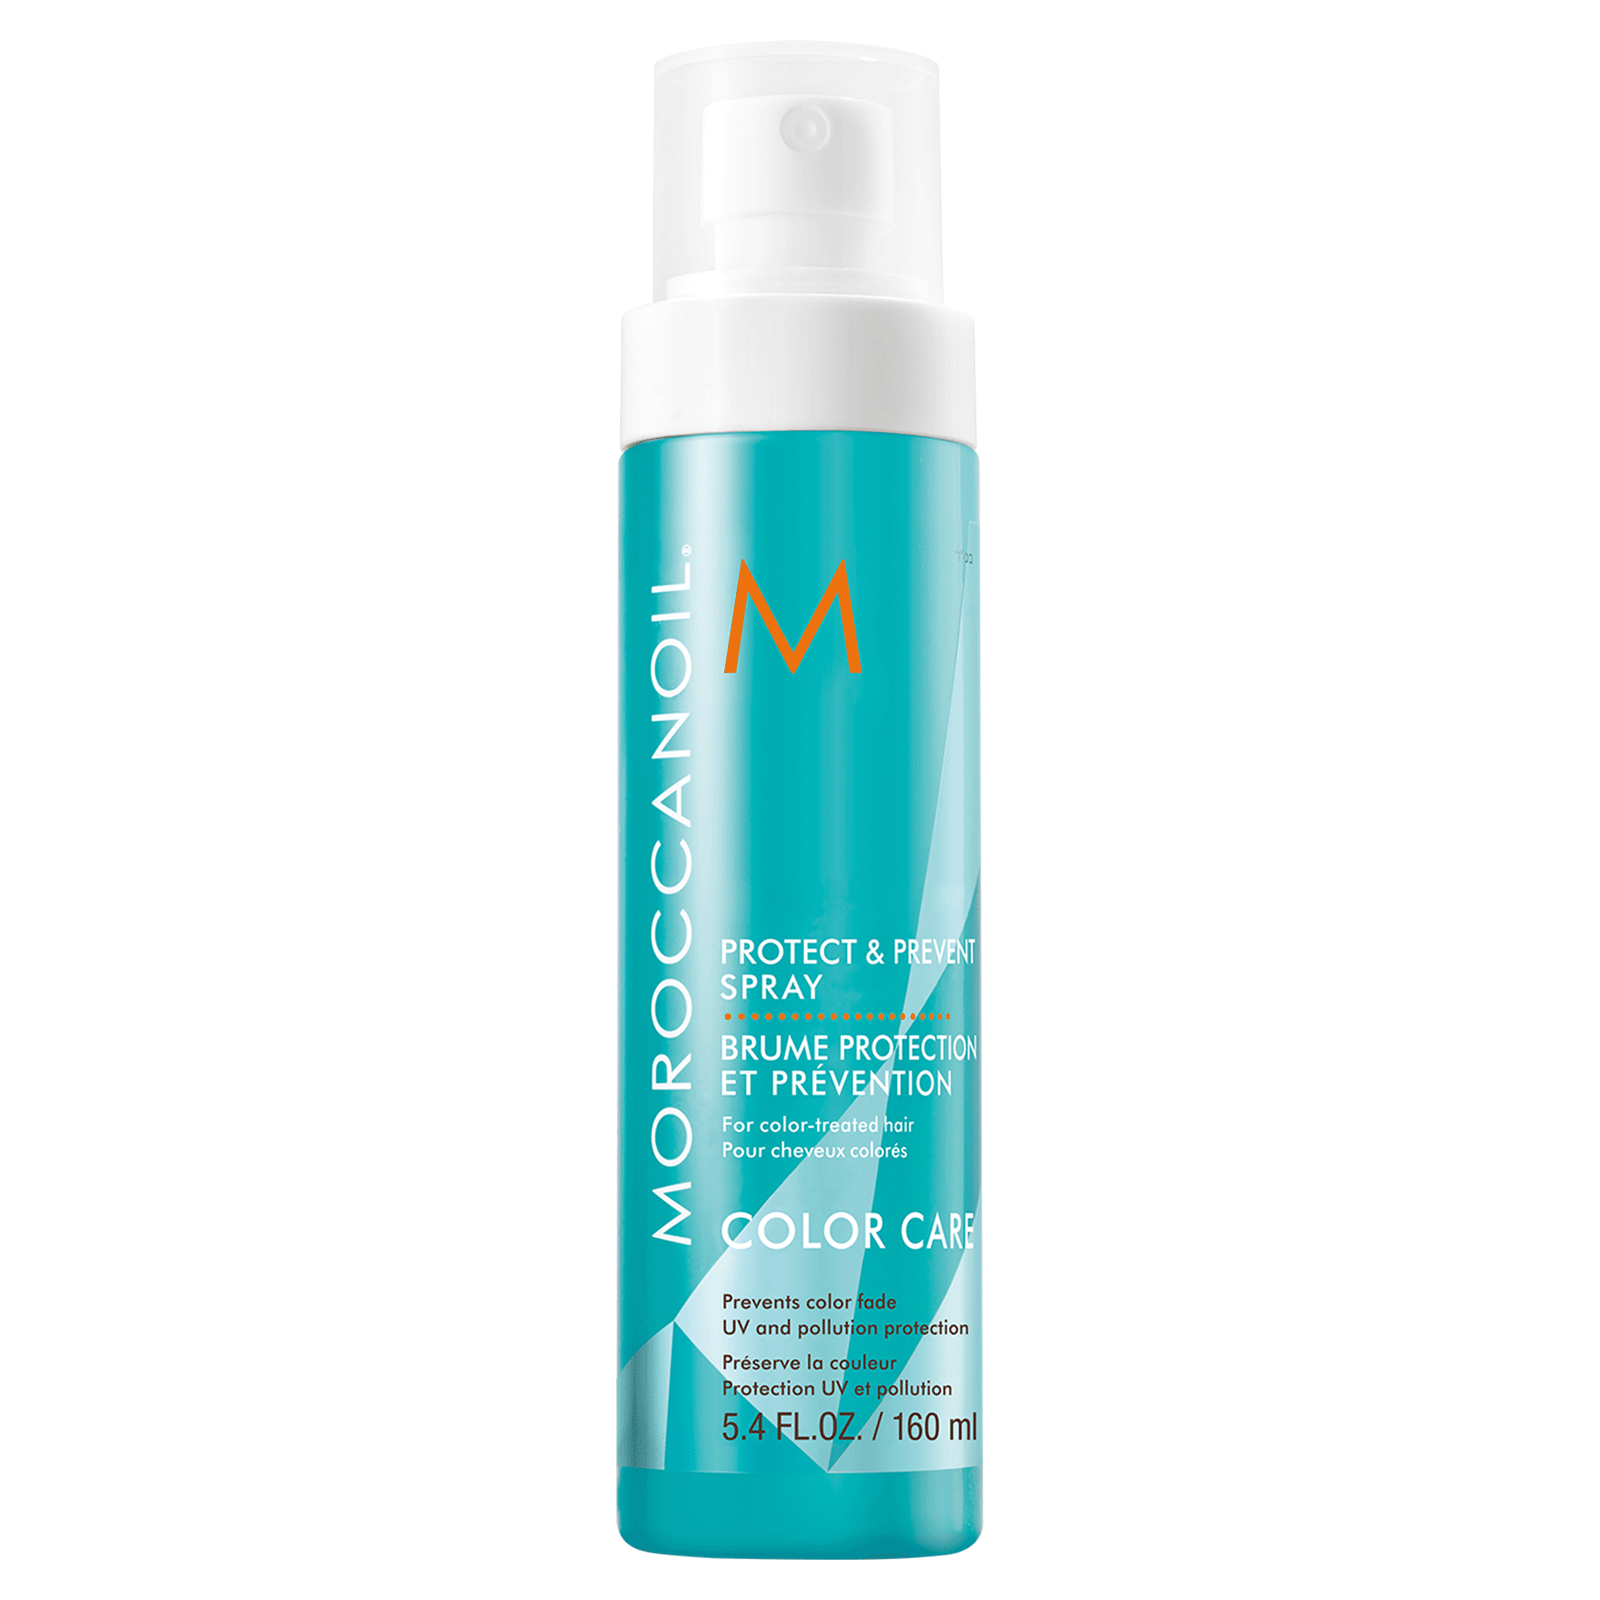 Protect & Prevent Spray for Color-Treated Hair